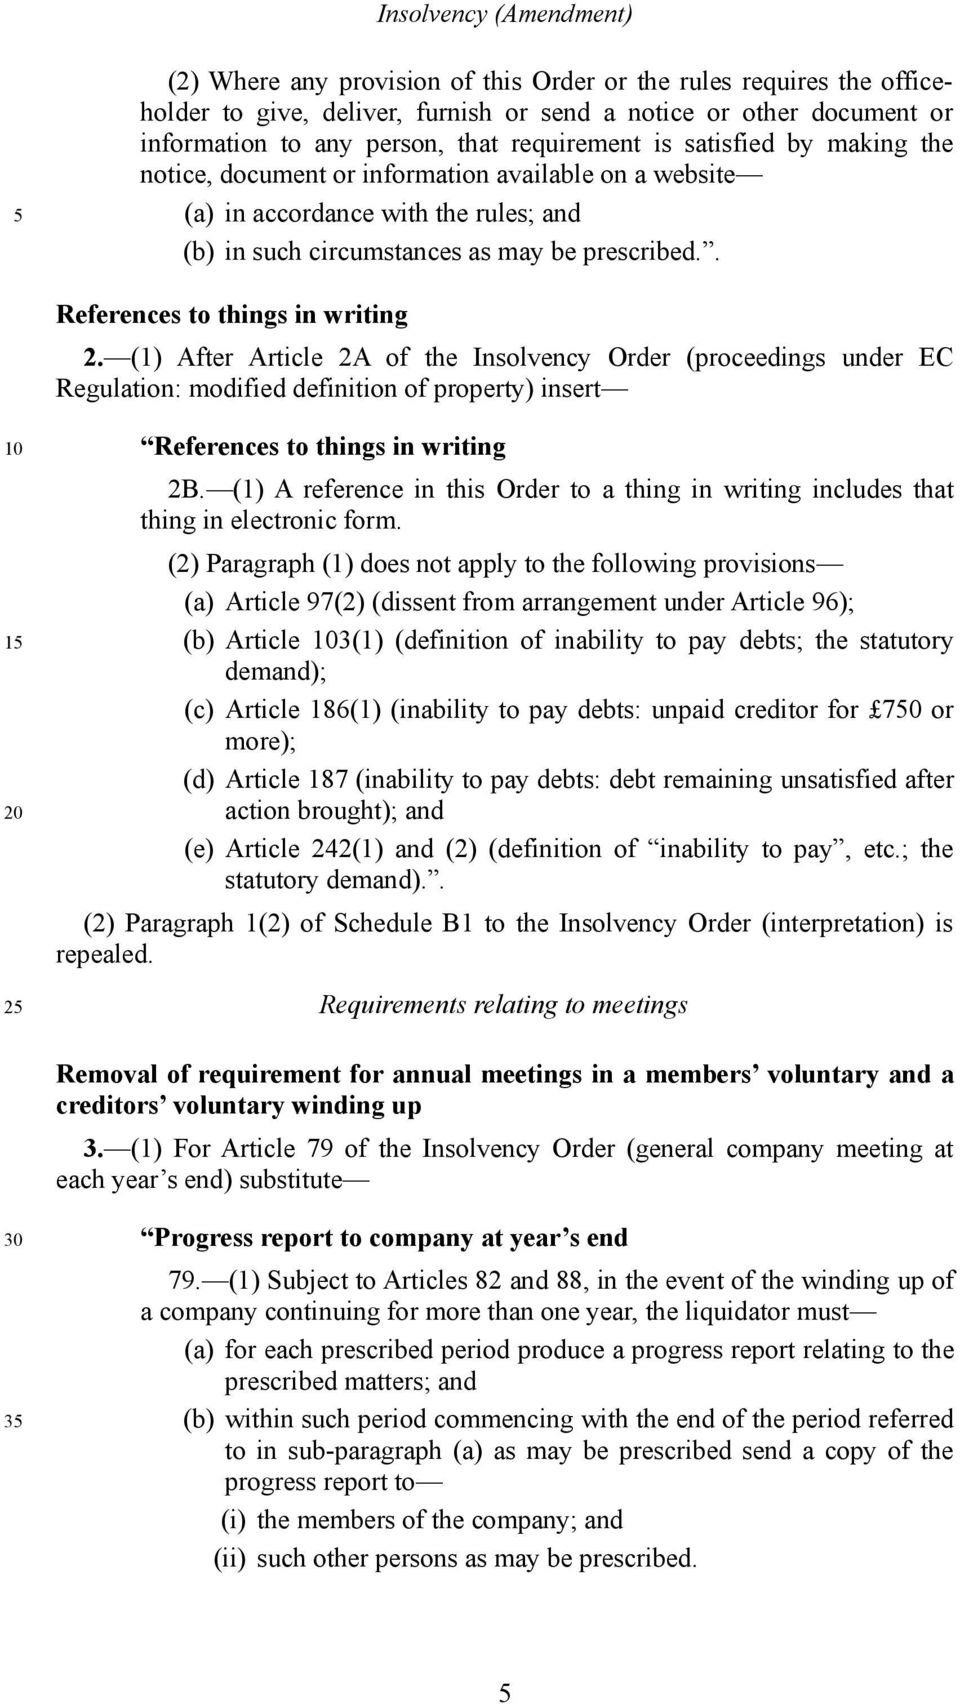 (1) After Article 2A of the Insolvency Order (proceedings under EC Regulation: modified definition of property) insert 2 References to things in writing 2B.